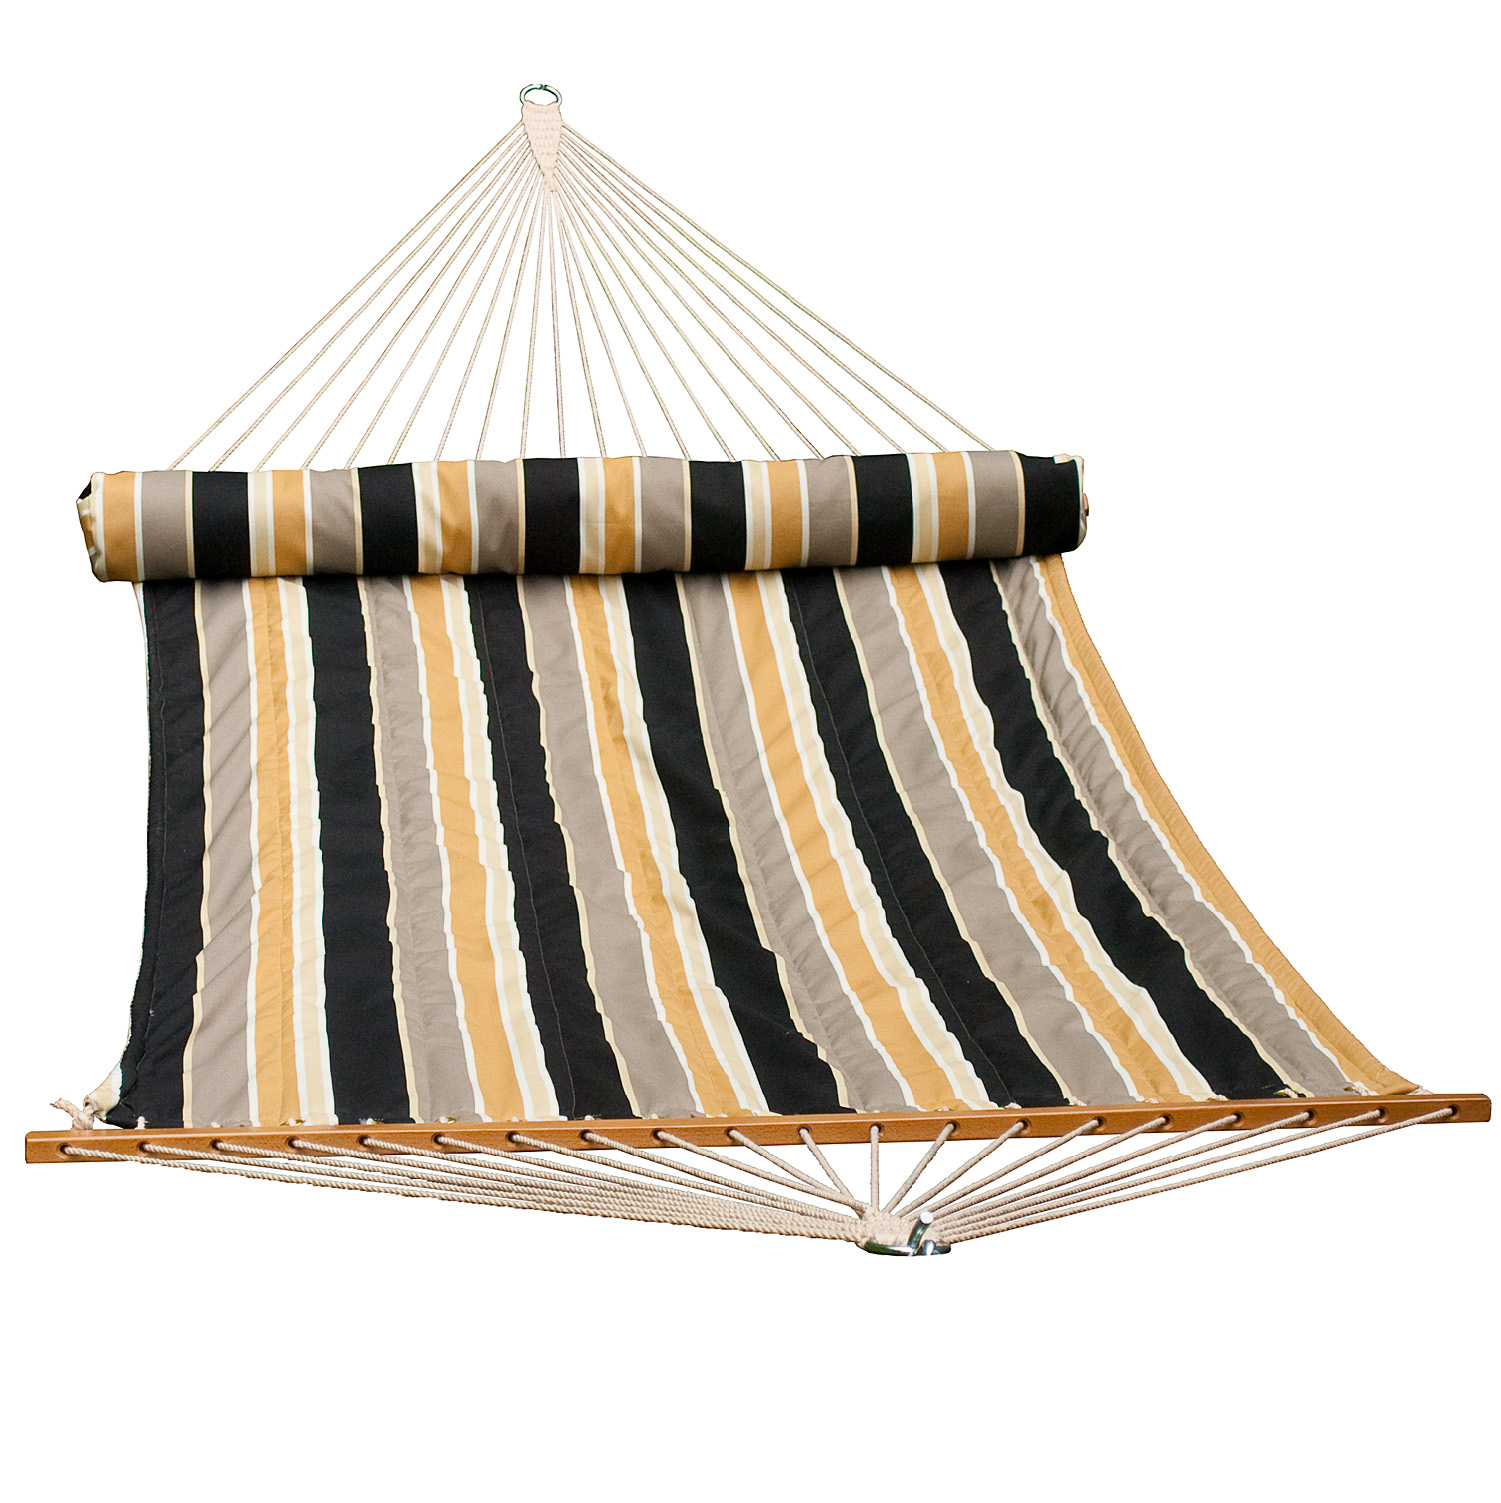 13 ft. 2-Point Quilted Fabrichammock With Matching Pillow, Black And Tan Stripe